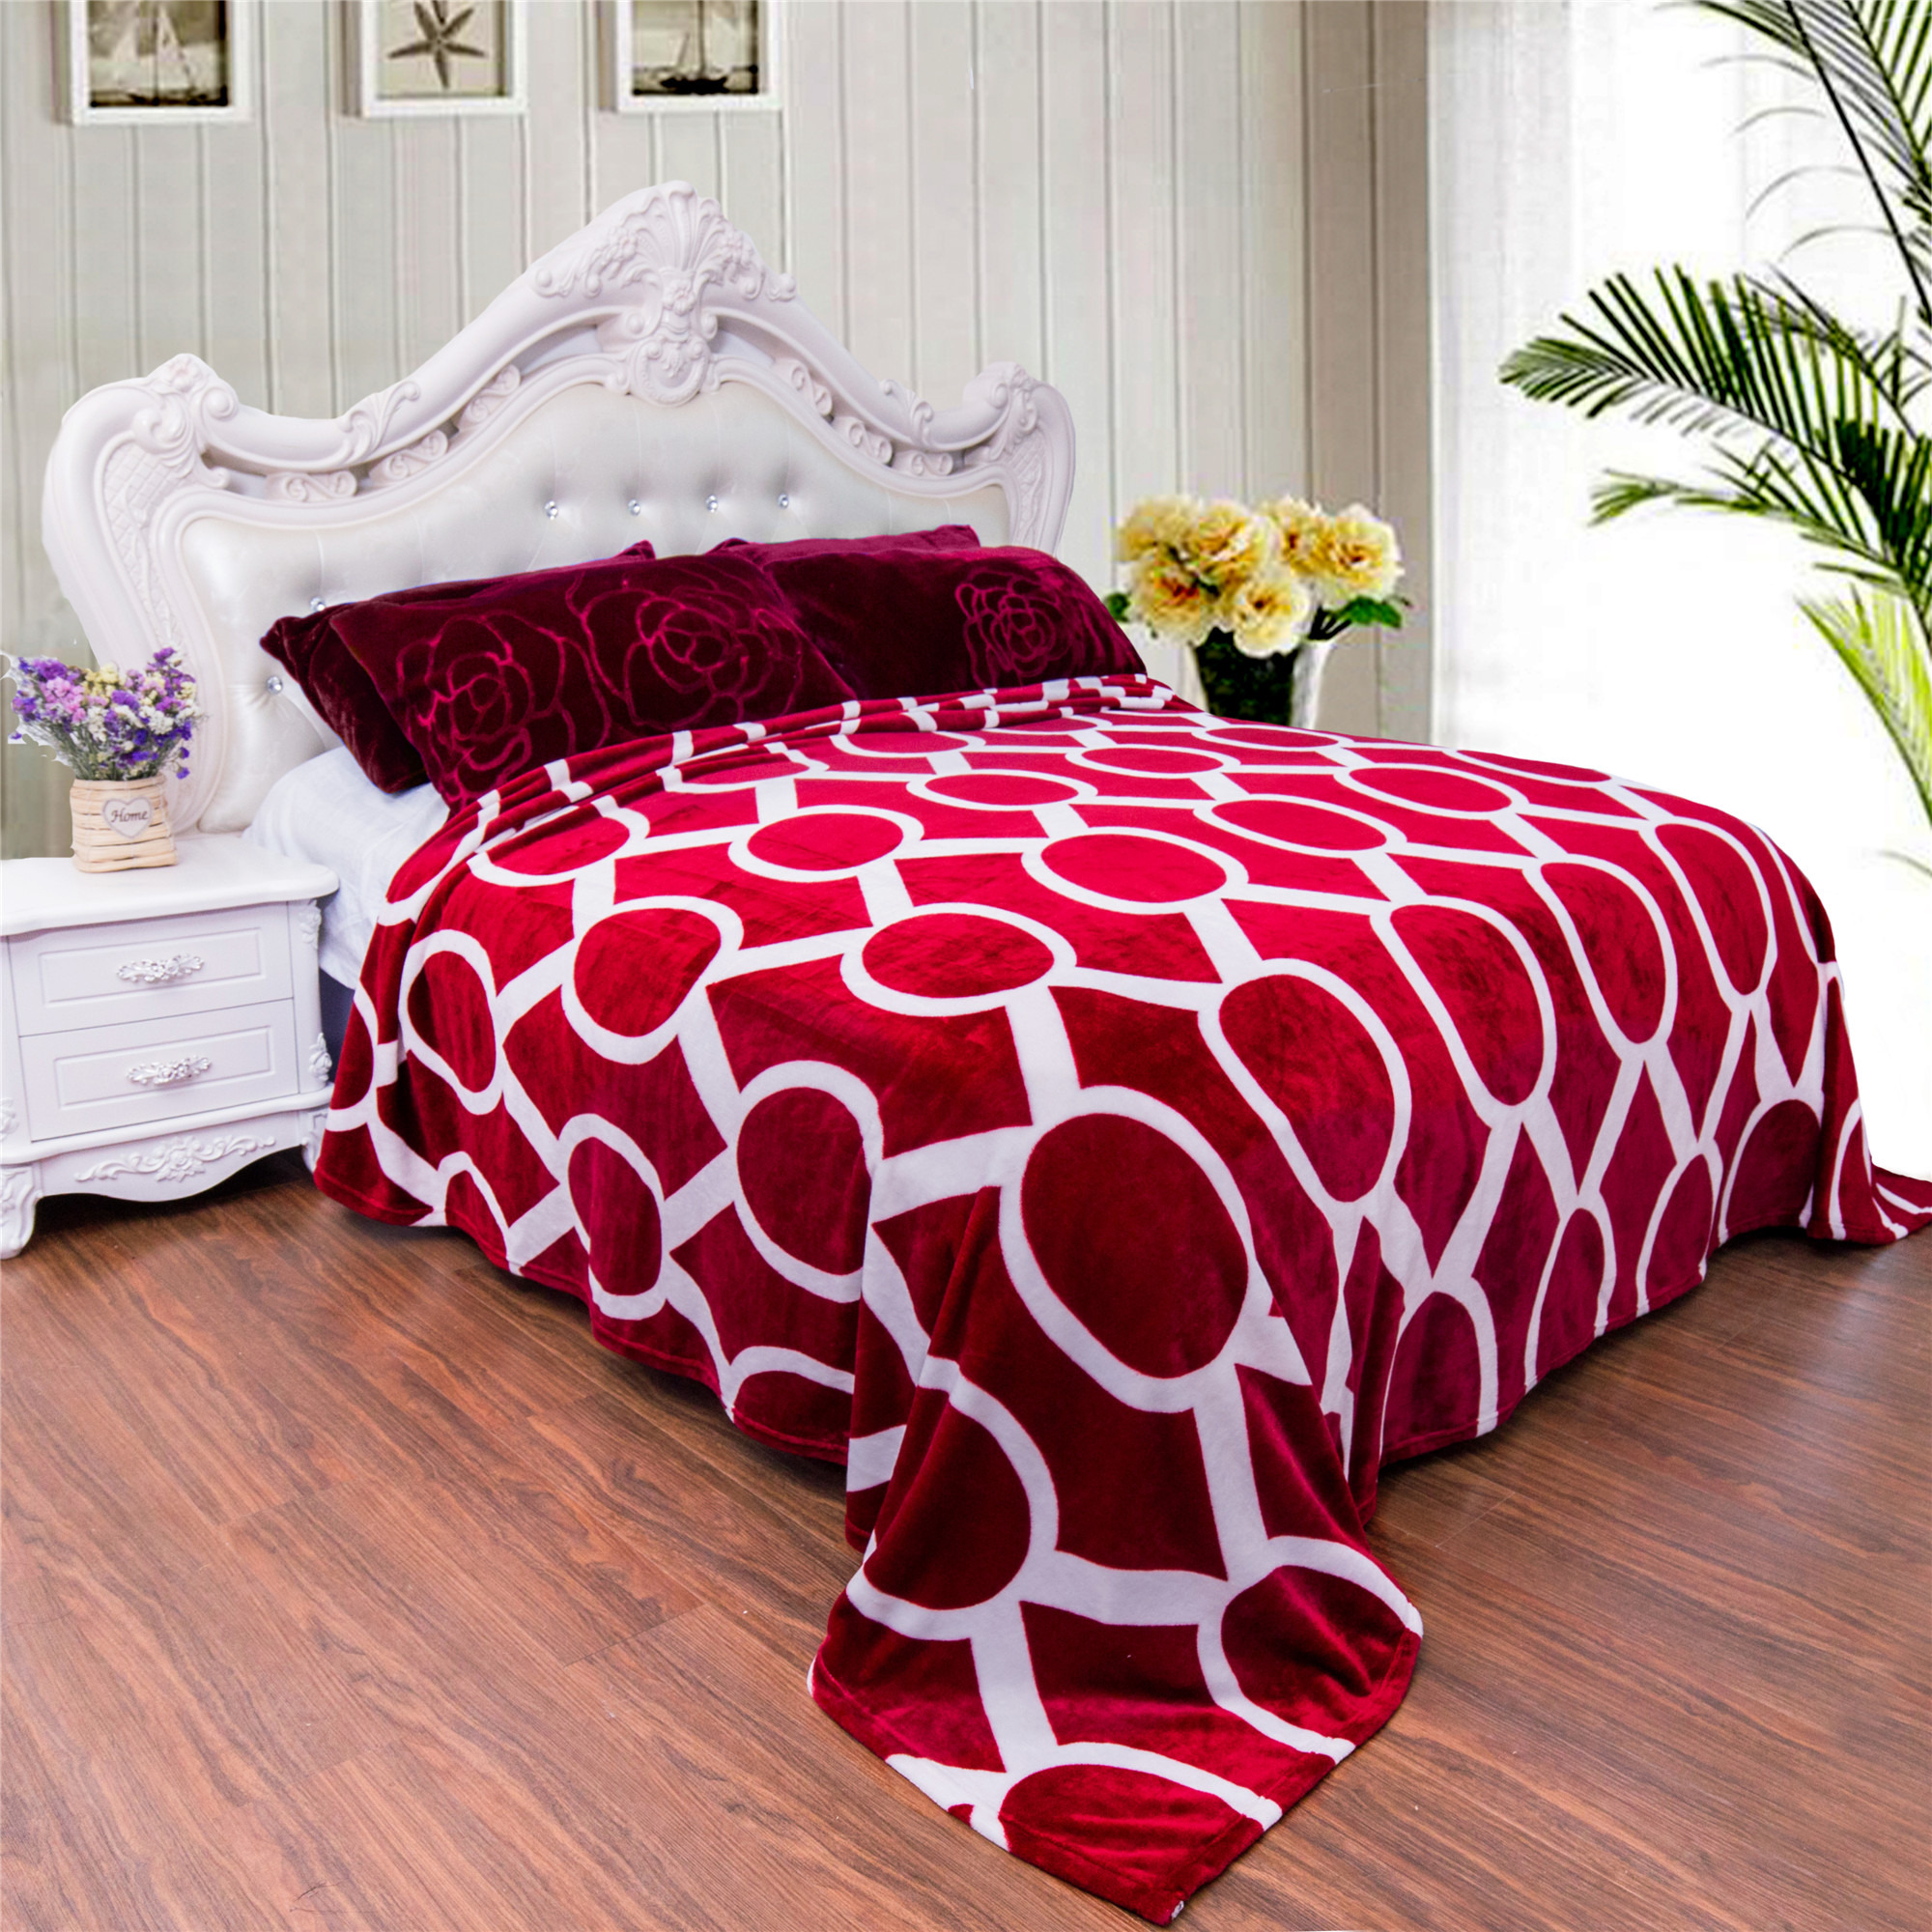 """Super Soft Printed Plush Fleece Blanket for Bed Couch King Size 91"""" x 103"""""""